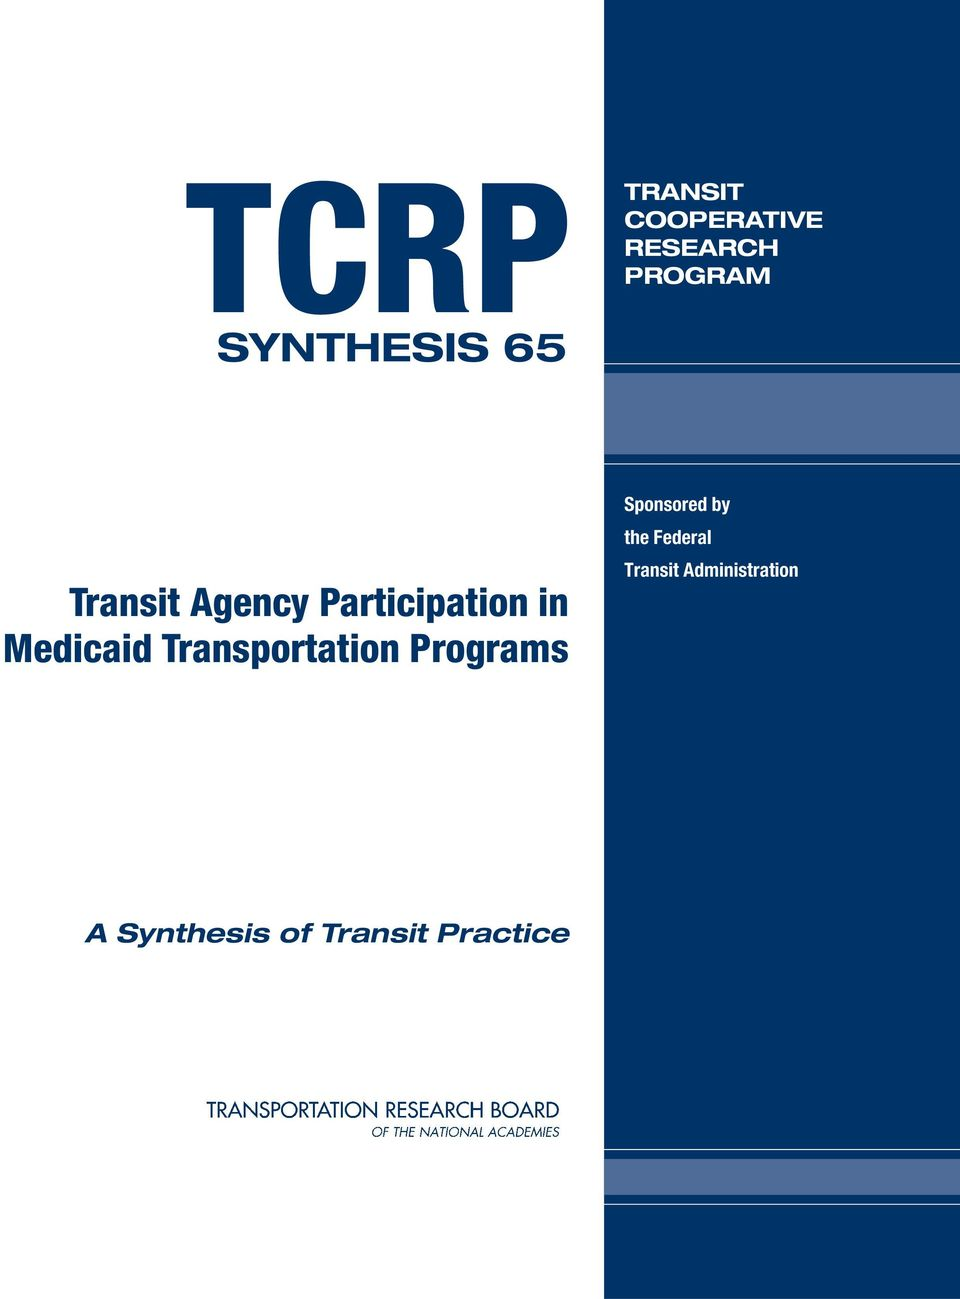 Transportation Programs Sponsored by the Federal